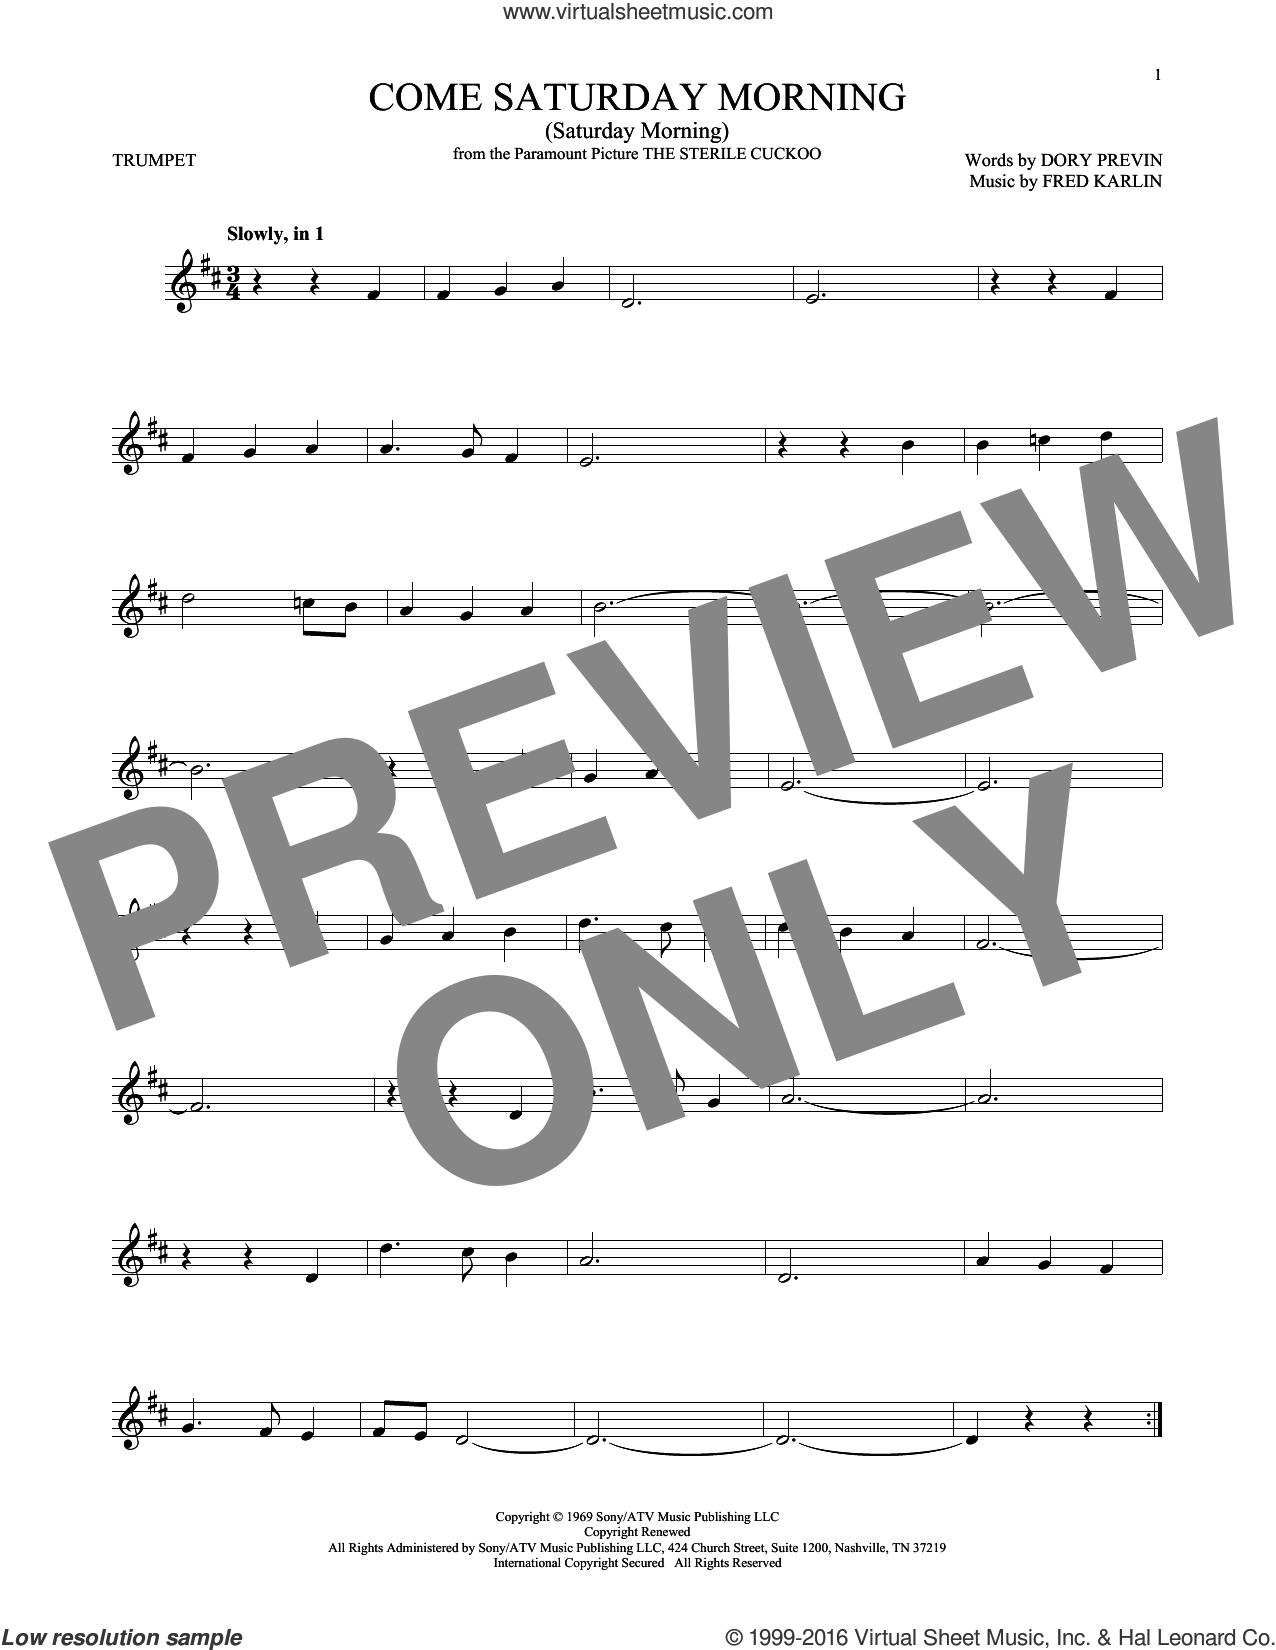 Come Saturday Morning (Saturday Morning) sheet music for trumpet solo by Dory Previn and Fred Karlin, intermediate skill level